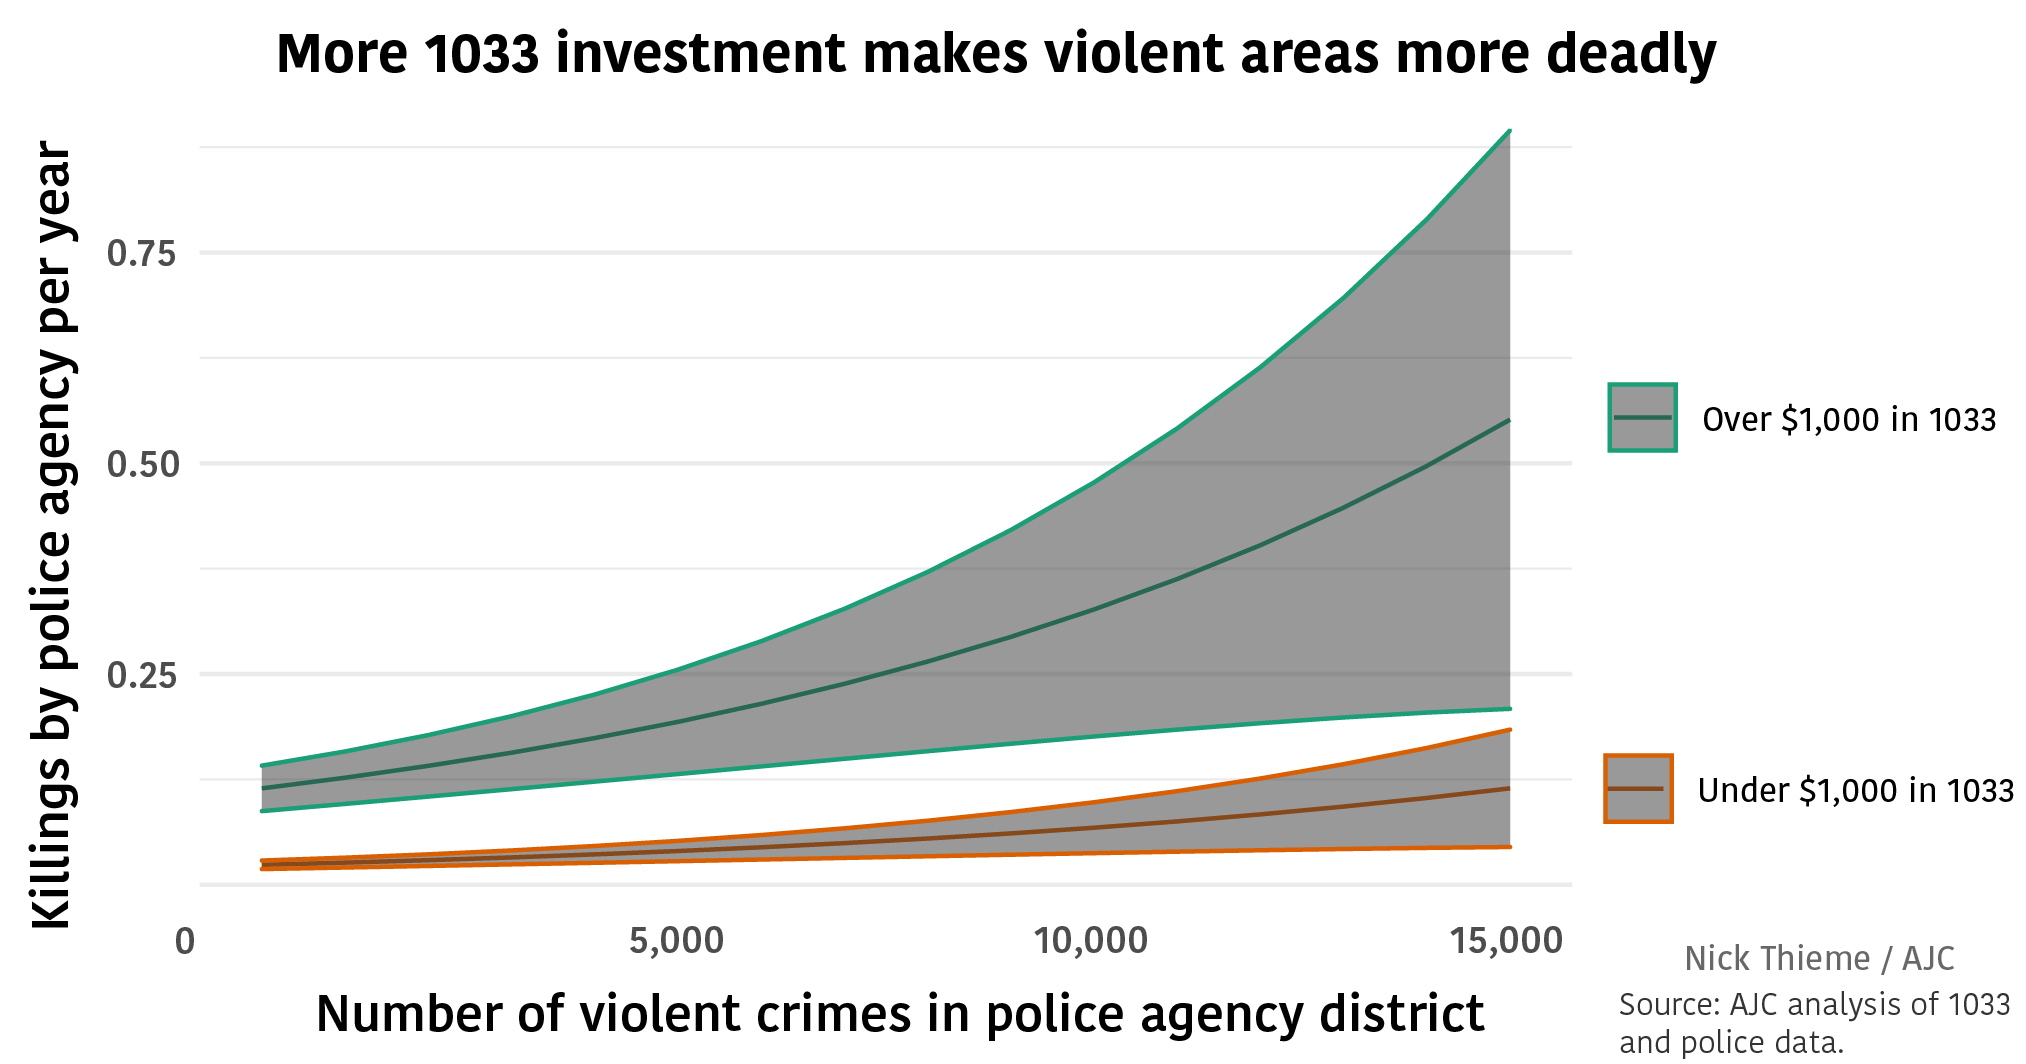 More 1033 investment makes violent areas more deadly